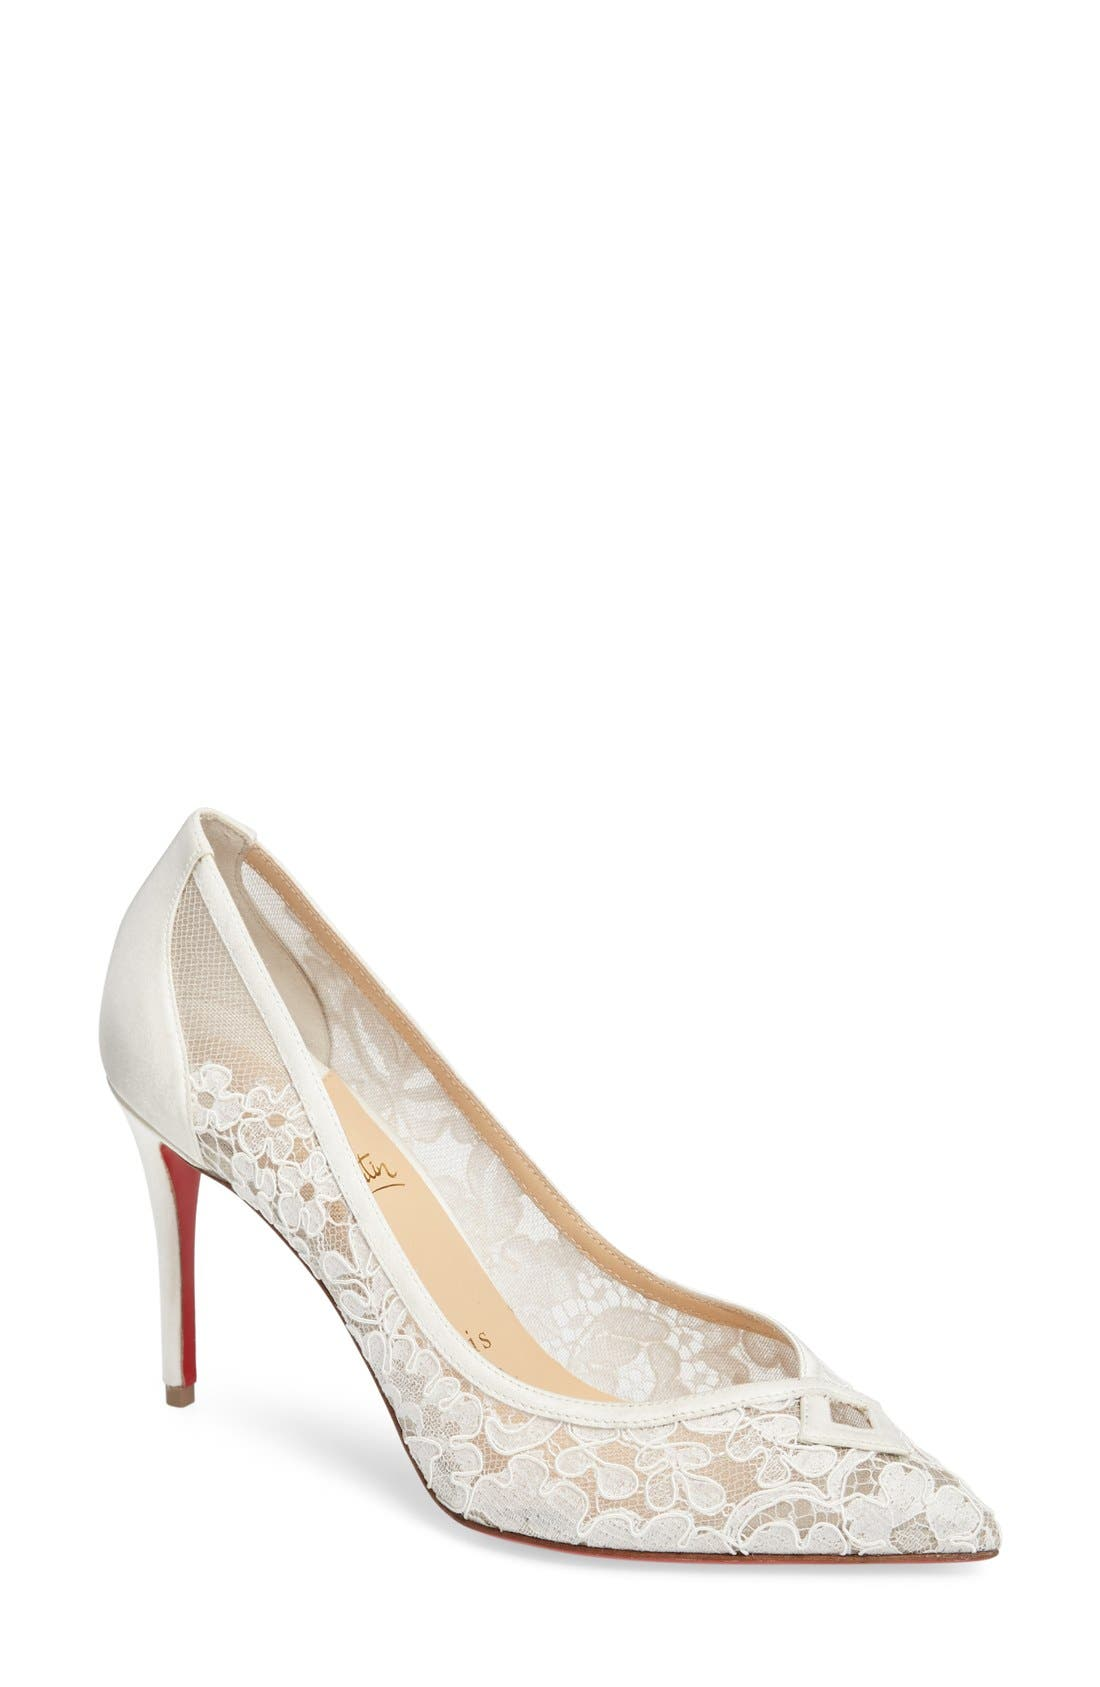 Alternate Image 1 Selected - Christian Louboutin Neoalto Pointy Toe Pump